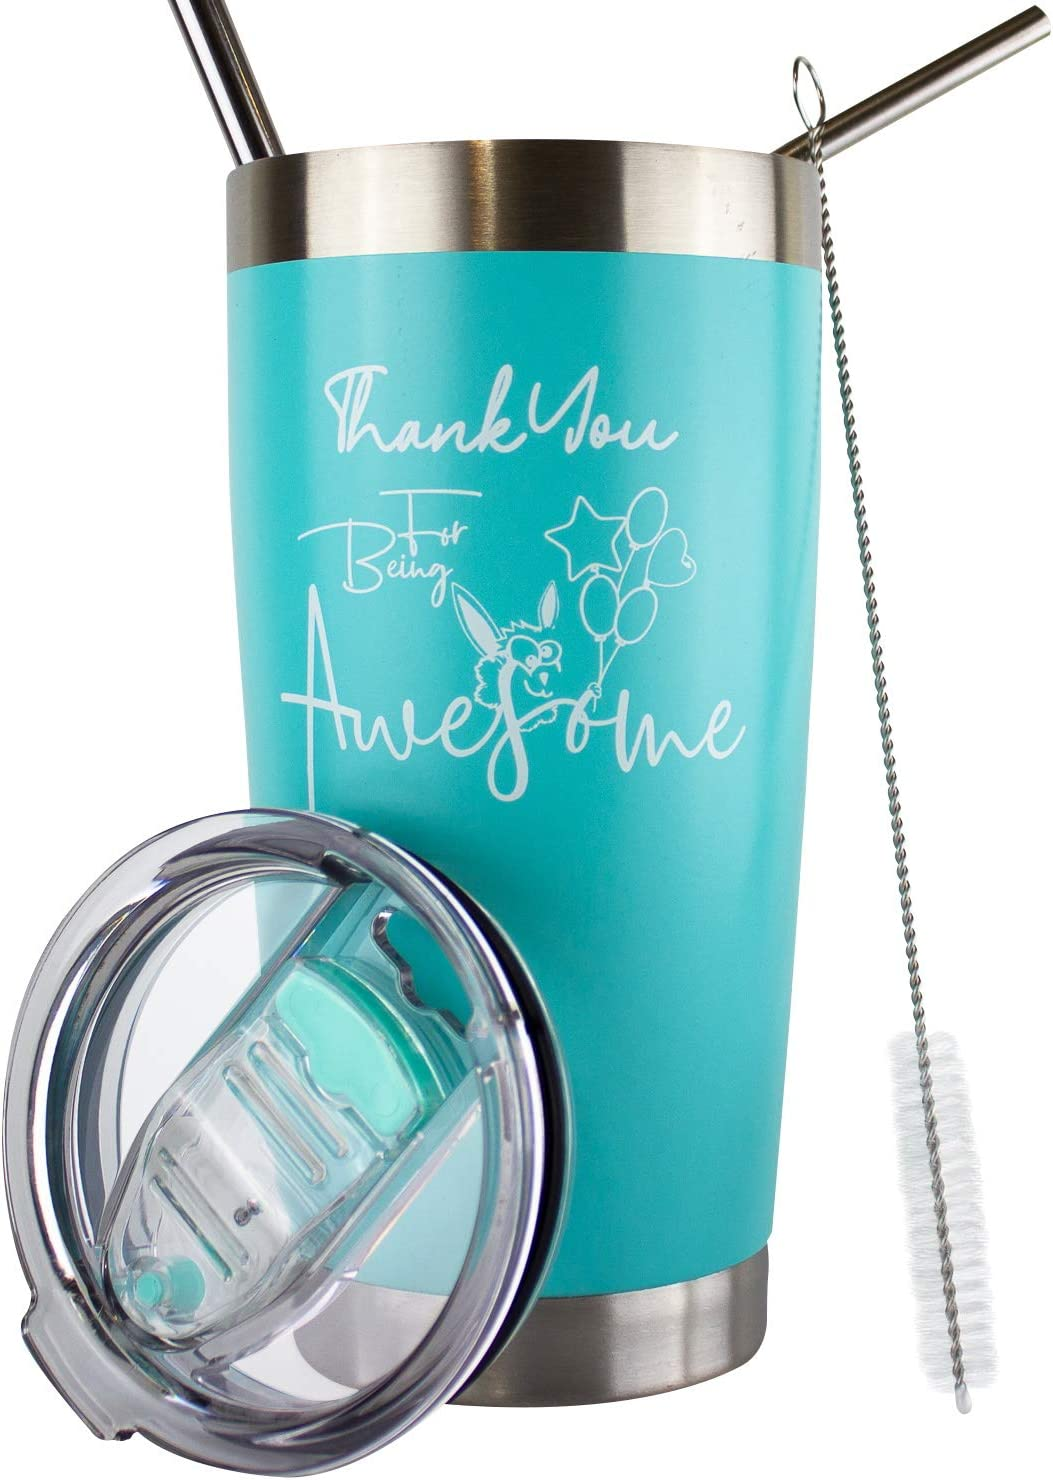 Thank You For Being Awesome Tumbler | Thank You Gifts For Coworkers | Best Gifts For Employees | Coworker Gifts For Women | Employee Appreciation Gifts | Teacher Appreciation Gifts Tumbler | 20 Oz